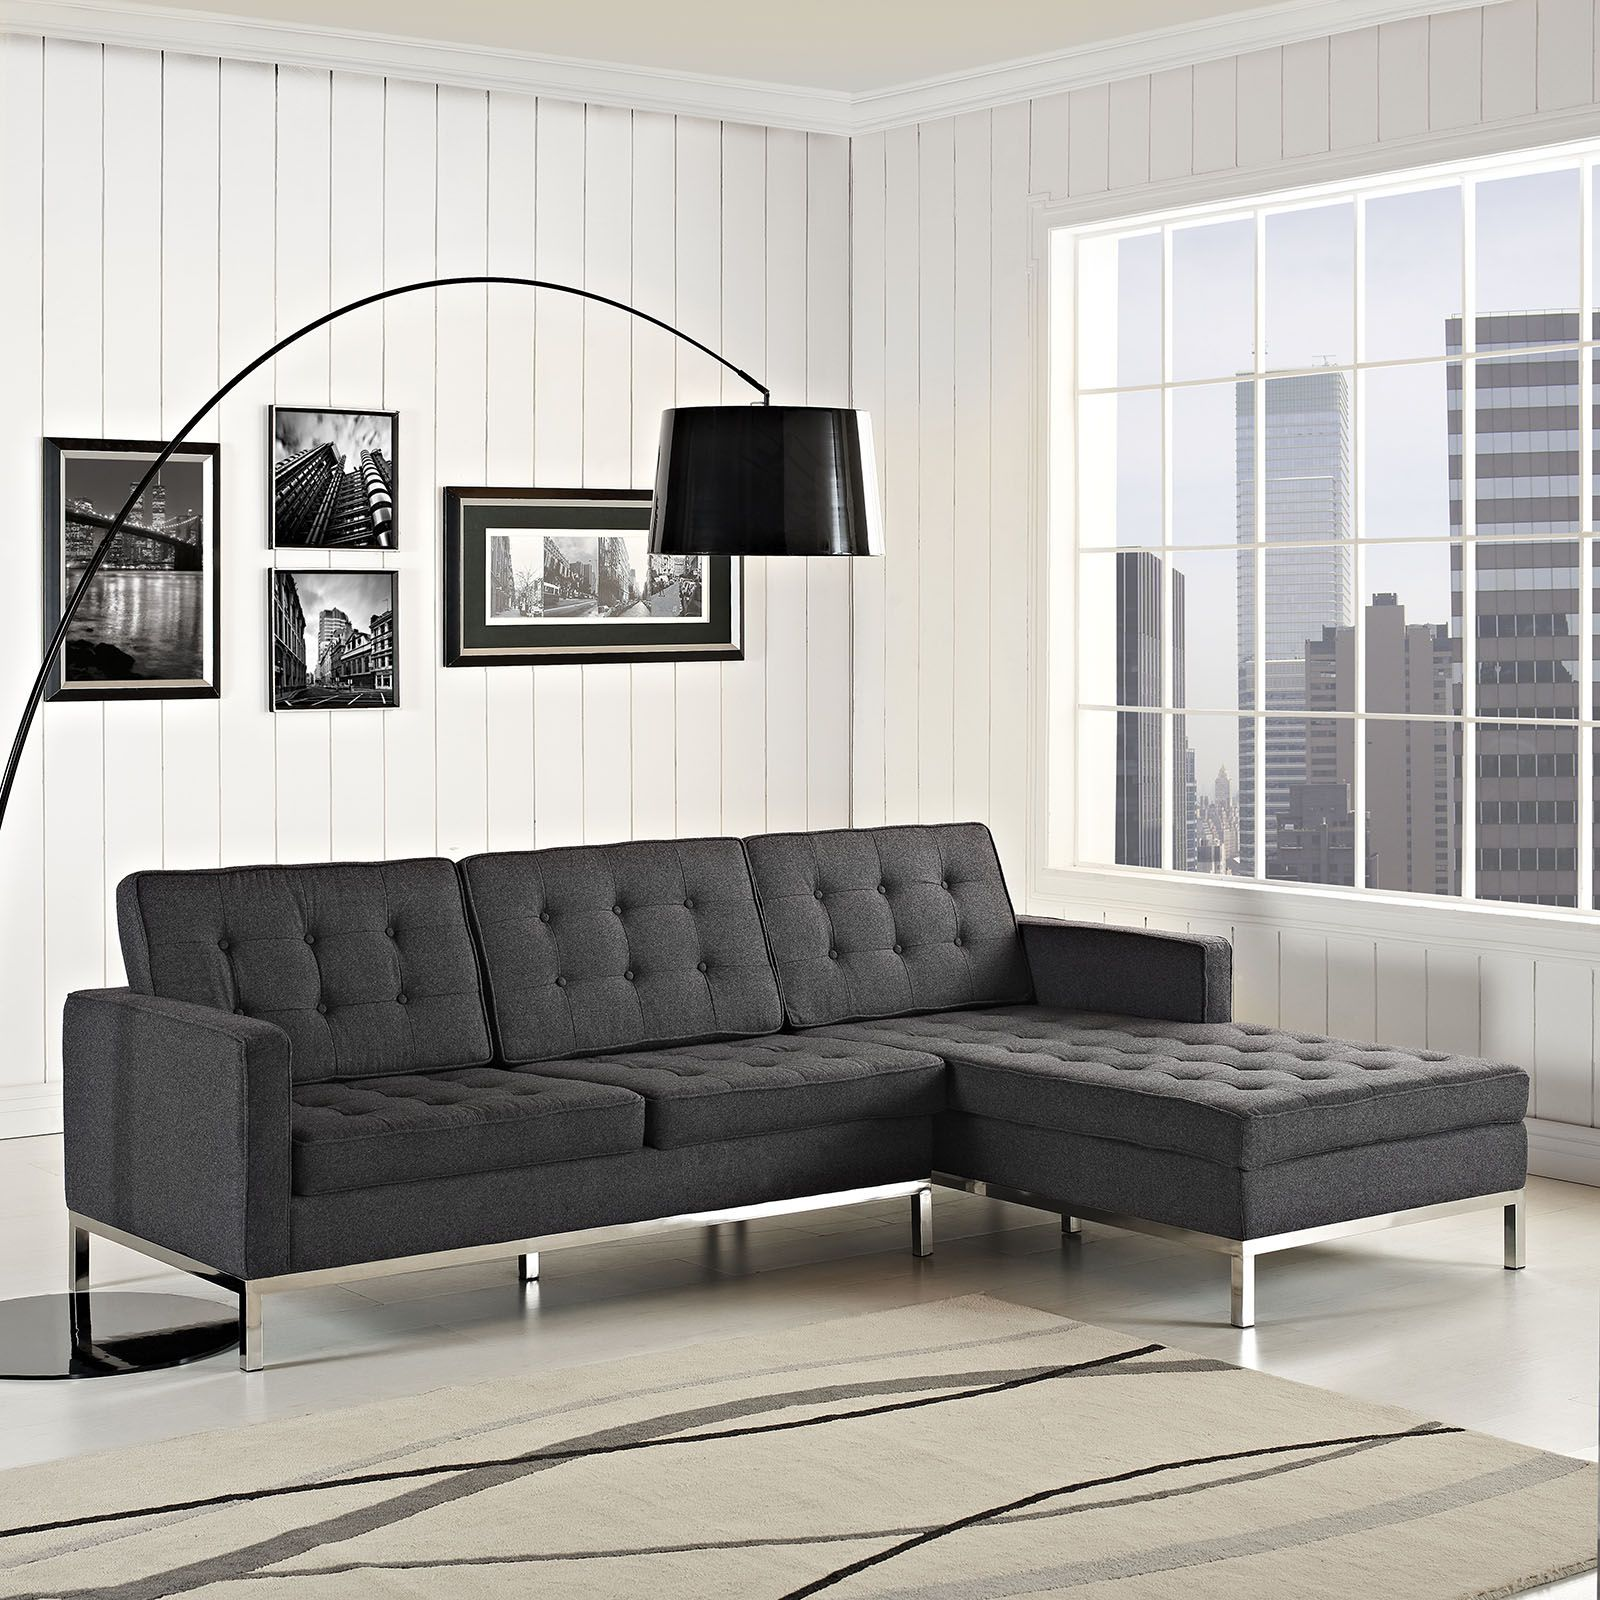 Swanky Charcoal Sectional Kick back and relax in urban chic style